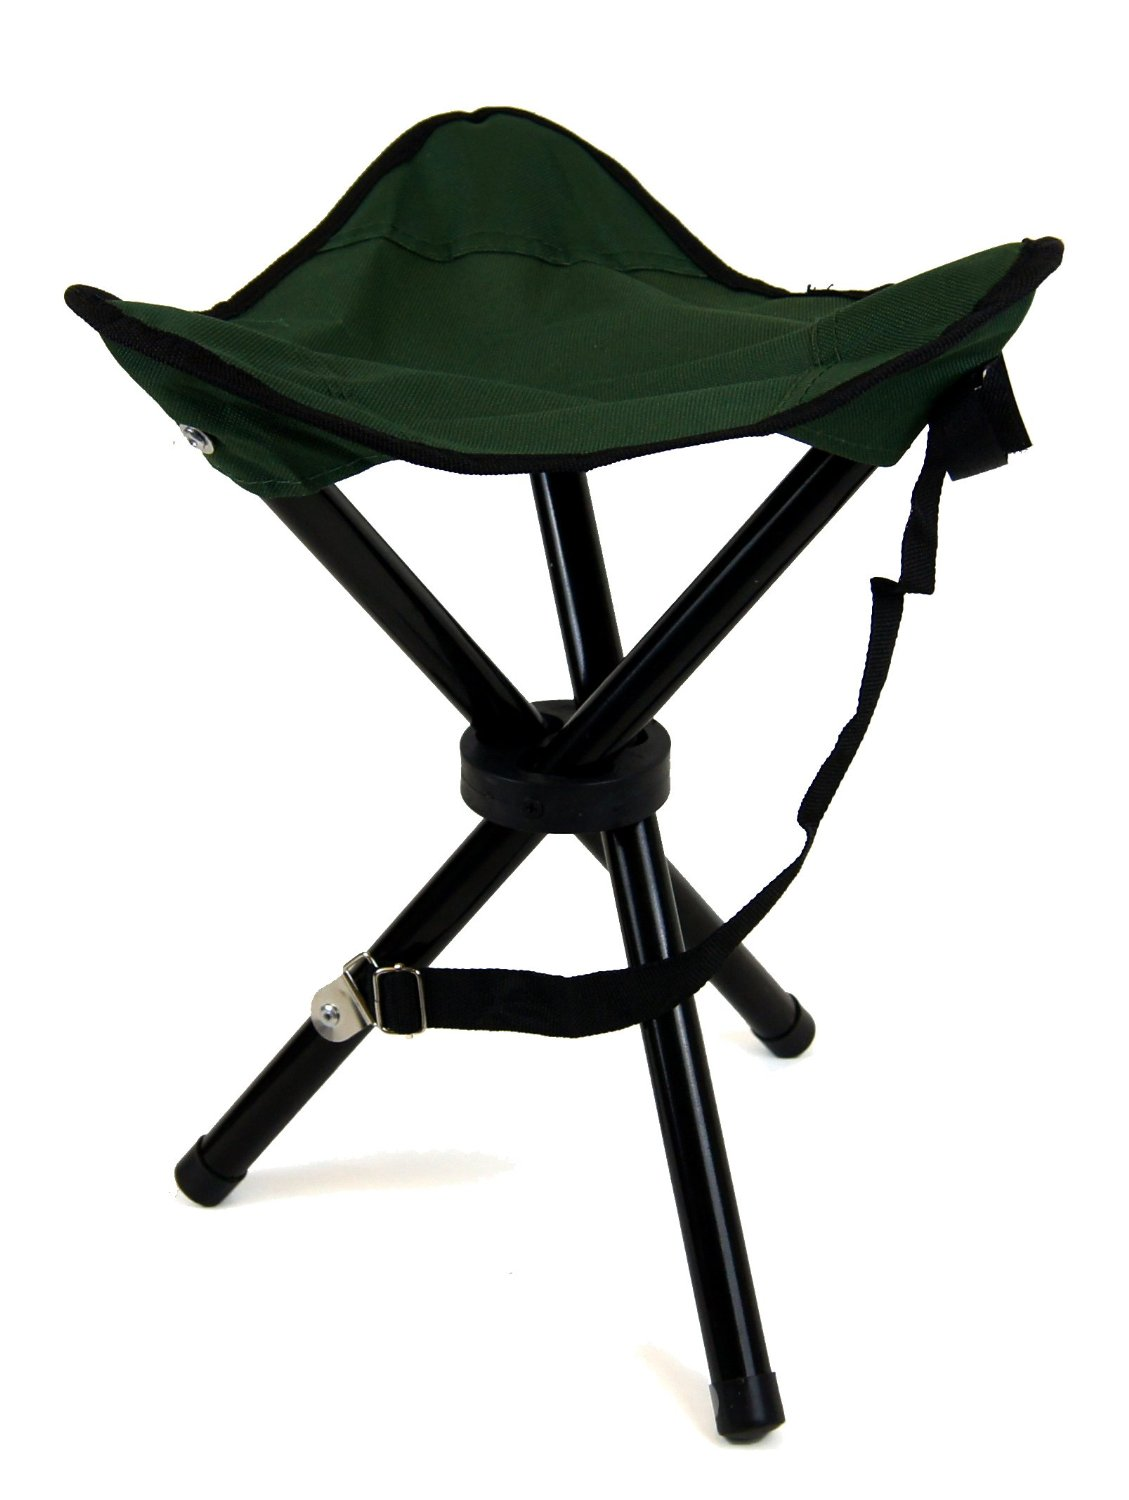 fishing chair ebay steel picture 2 x large folding camping stool seat sports camp festivals tripod seats |